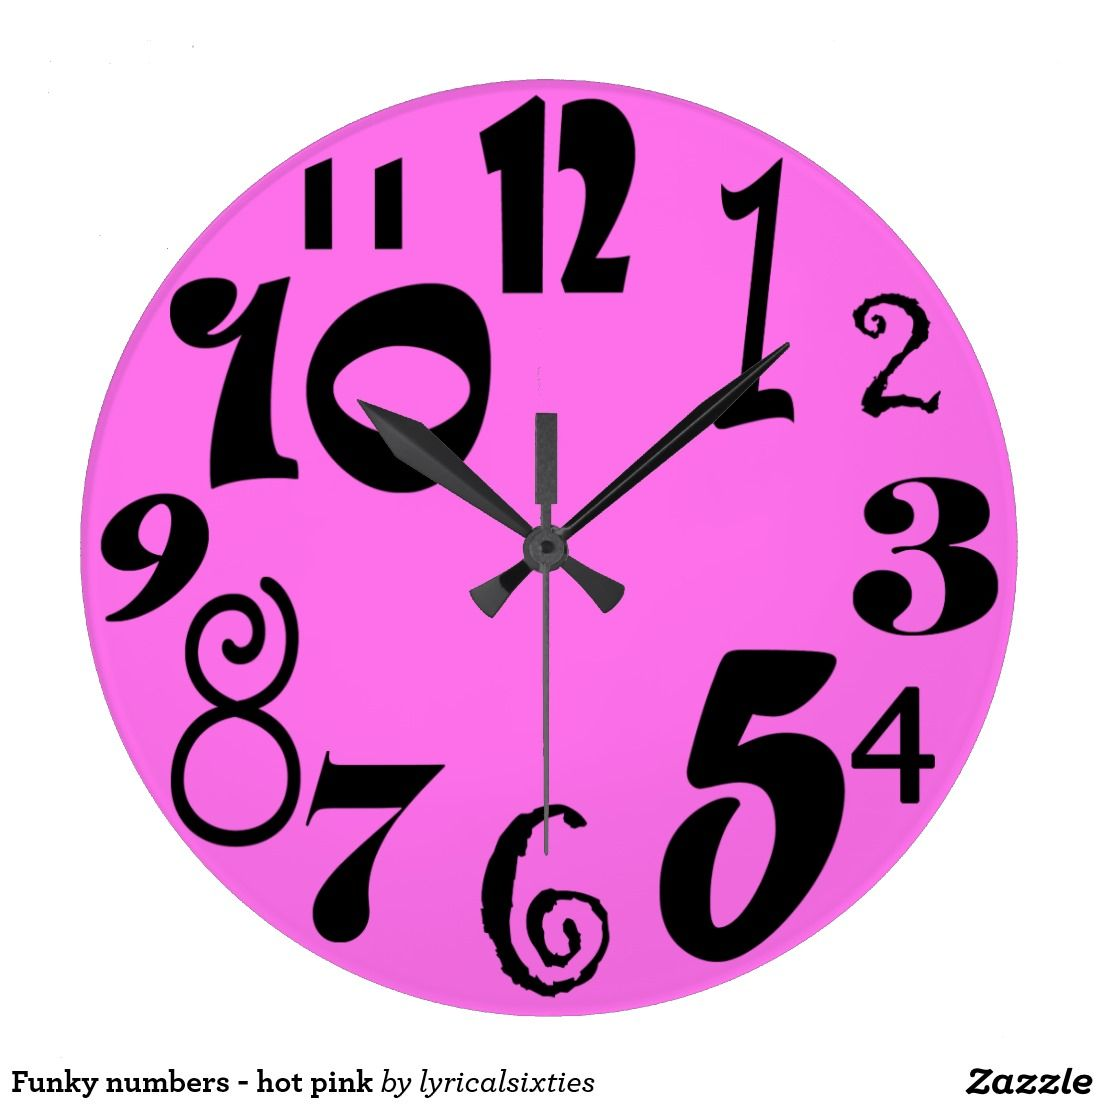 Cool Clock Hands Funky Numbers Hot Pink Clock A Cool Clock With A Hot